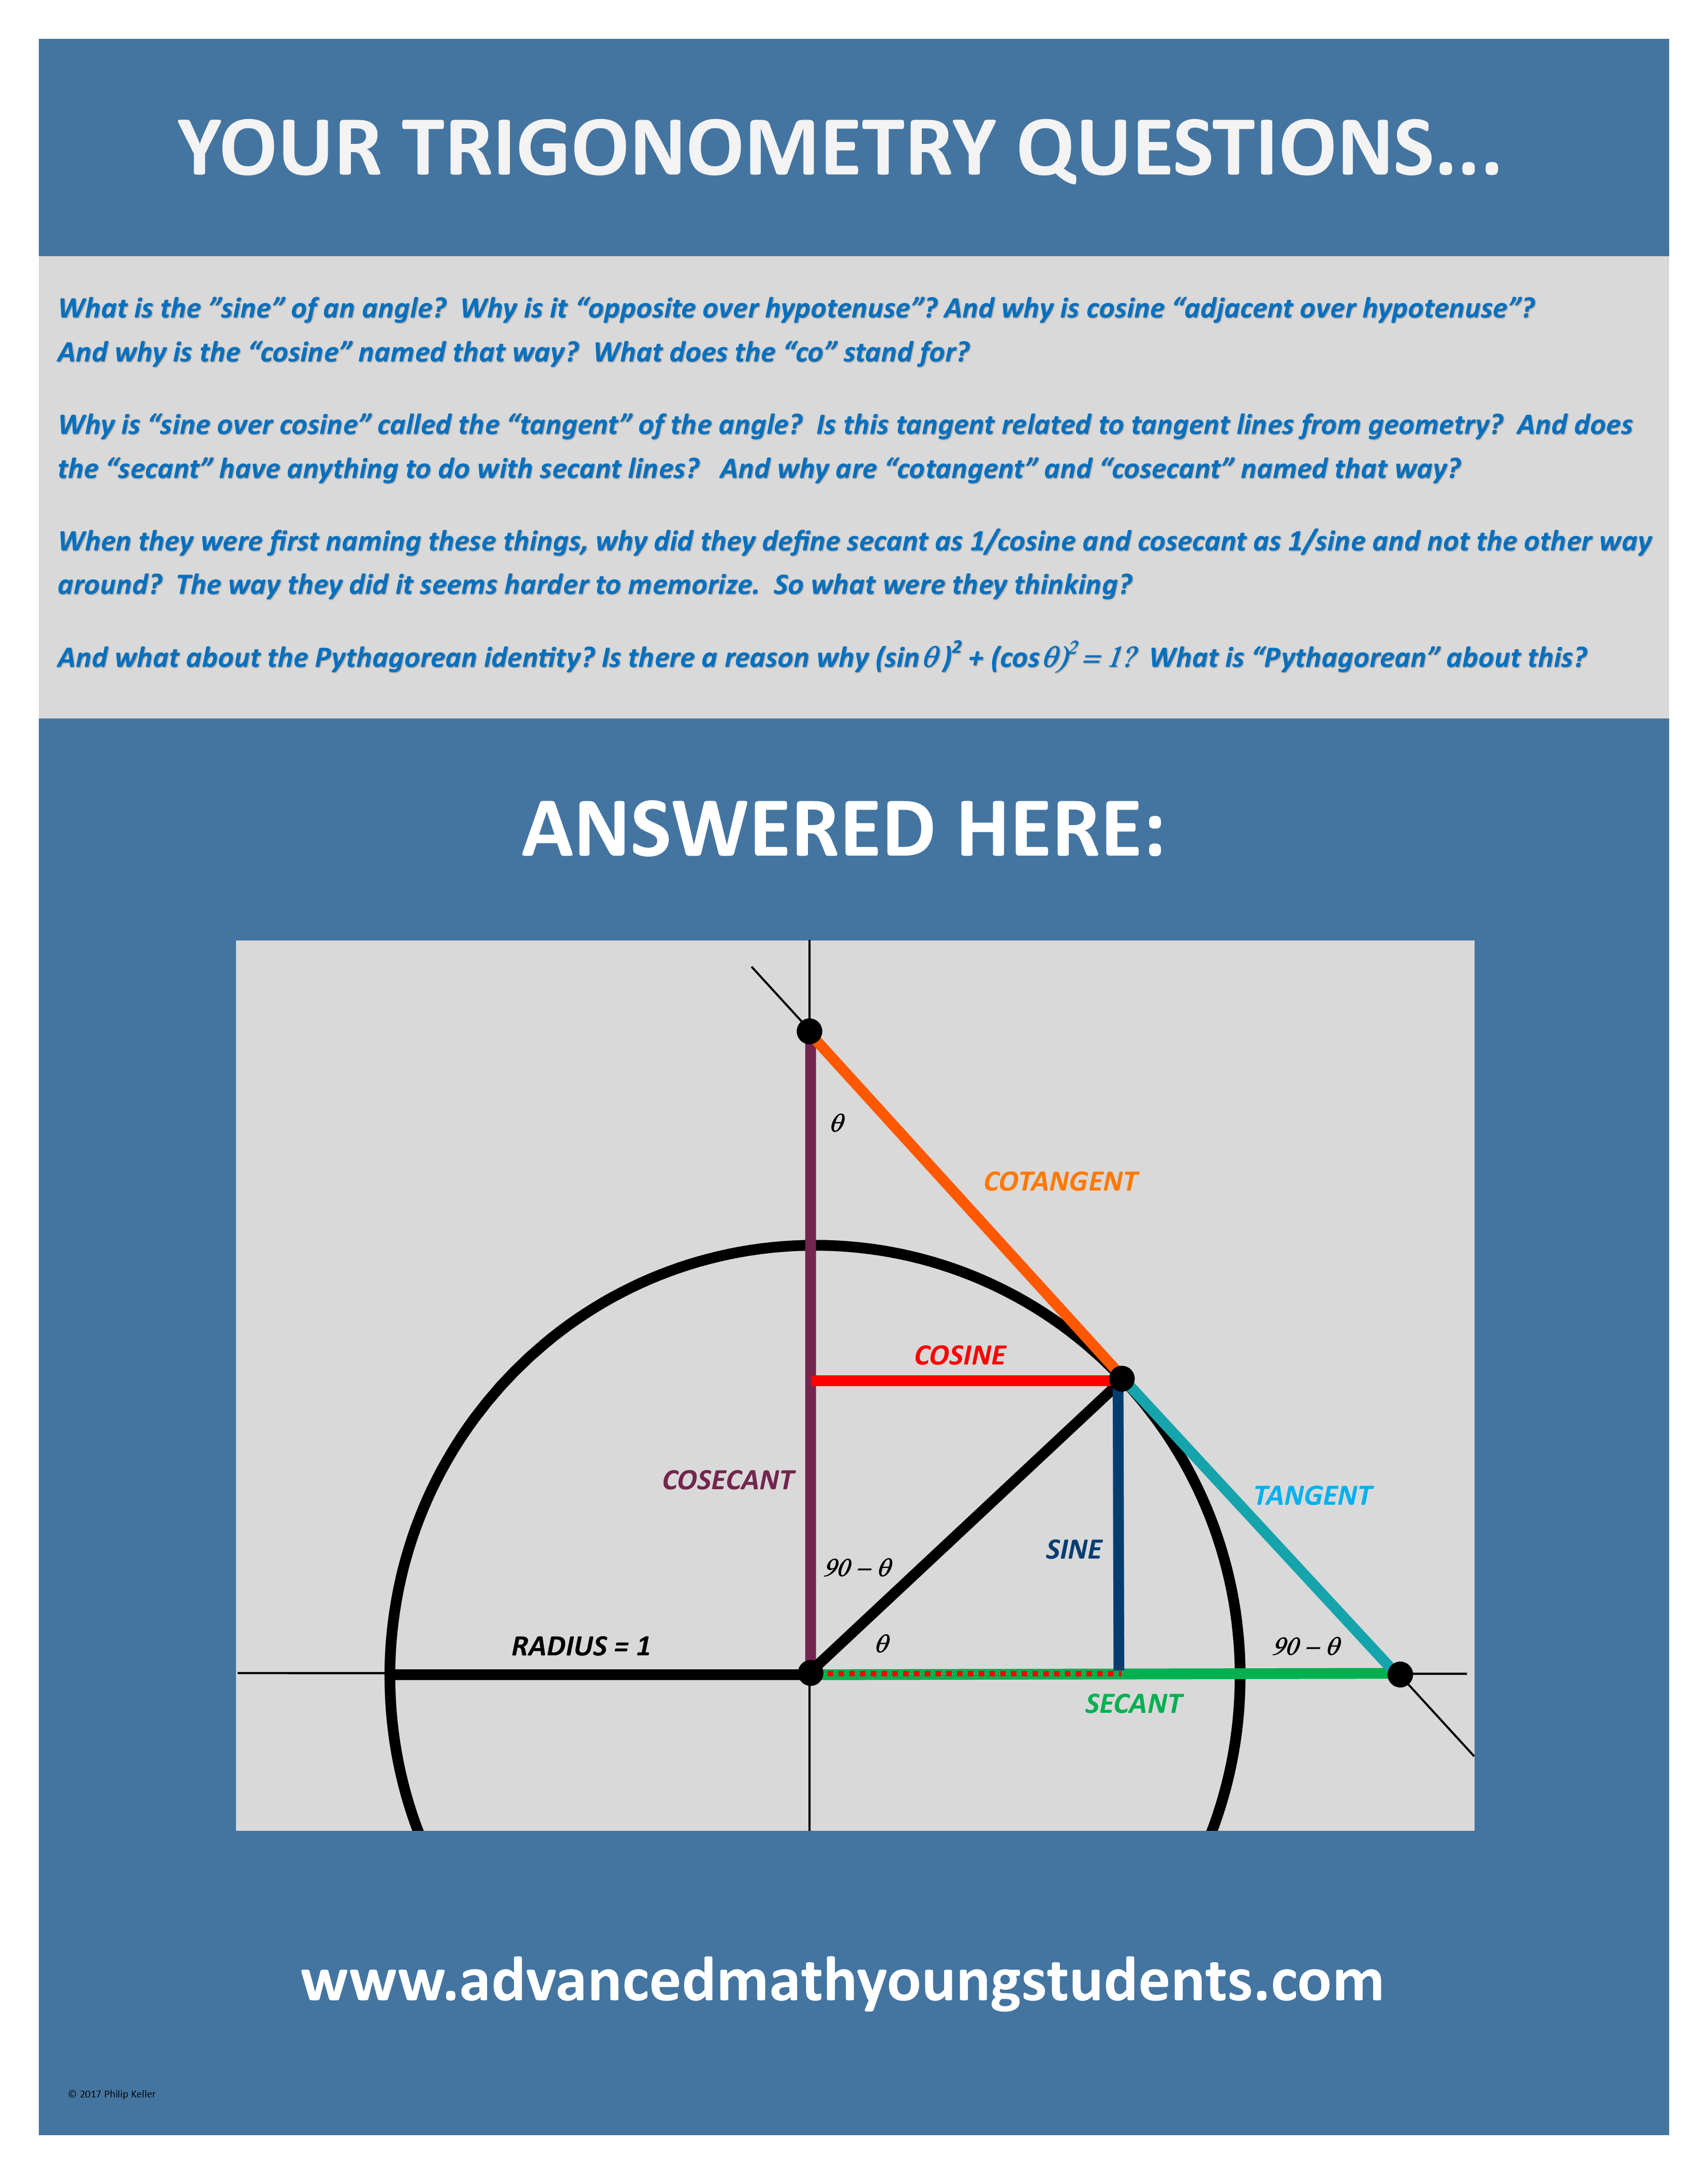 That trigonometry diagram again advanced math for young students it makes me believe that it would be helpful if this diagram was displayed in every room where trigonometry is introduced and now it can be ccuart Choice Image